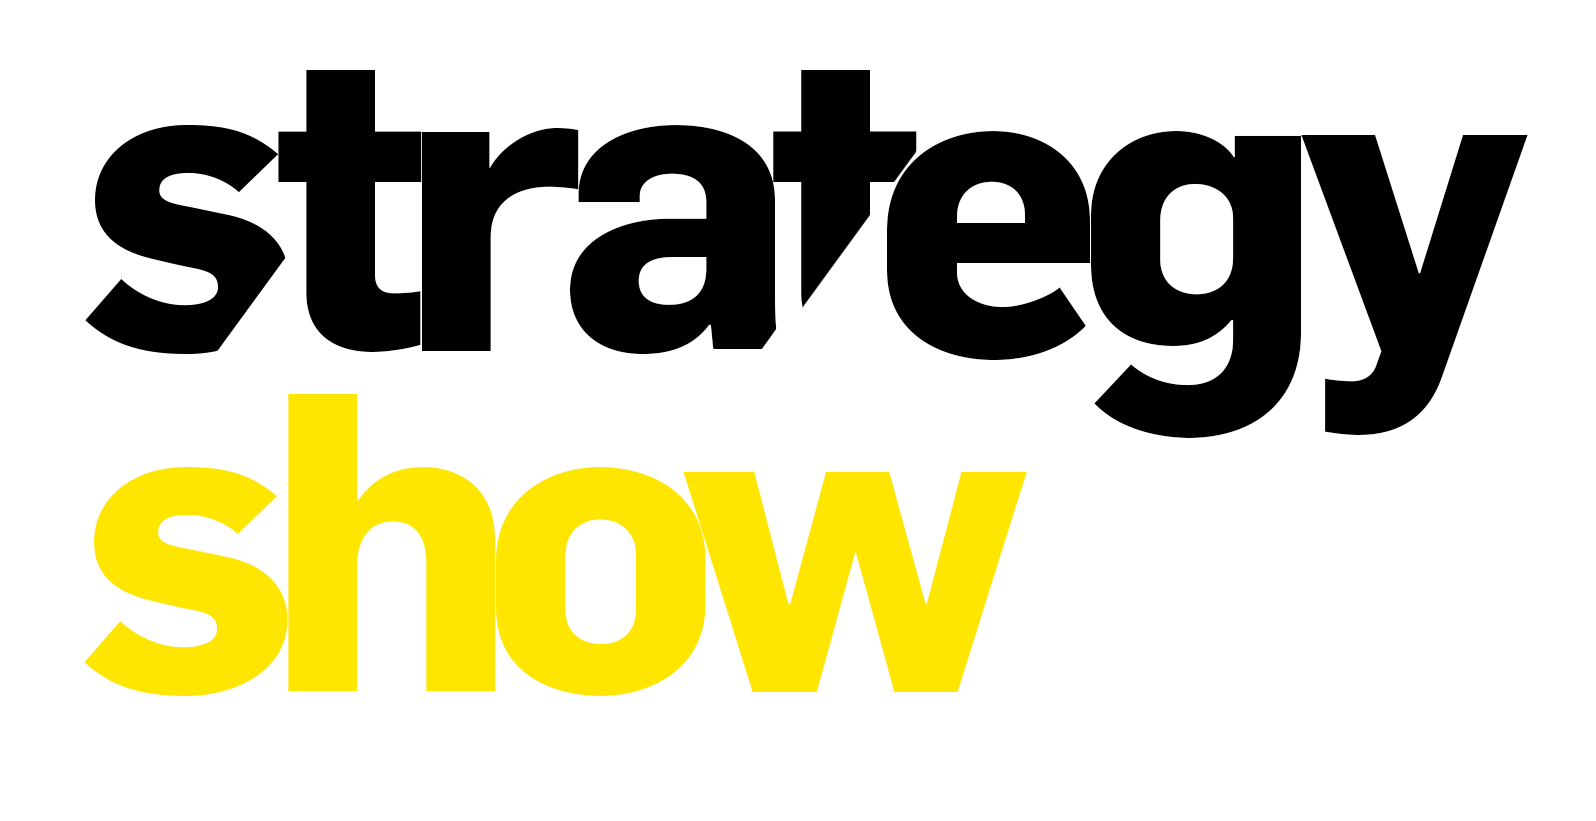 Strategy show logo black and yellow wording on white background